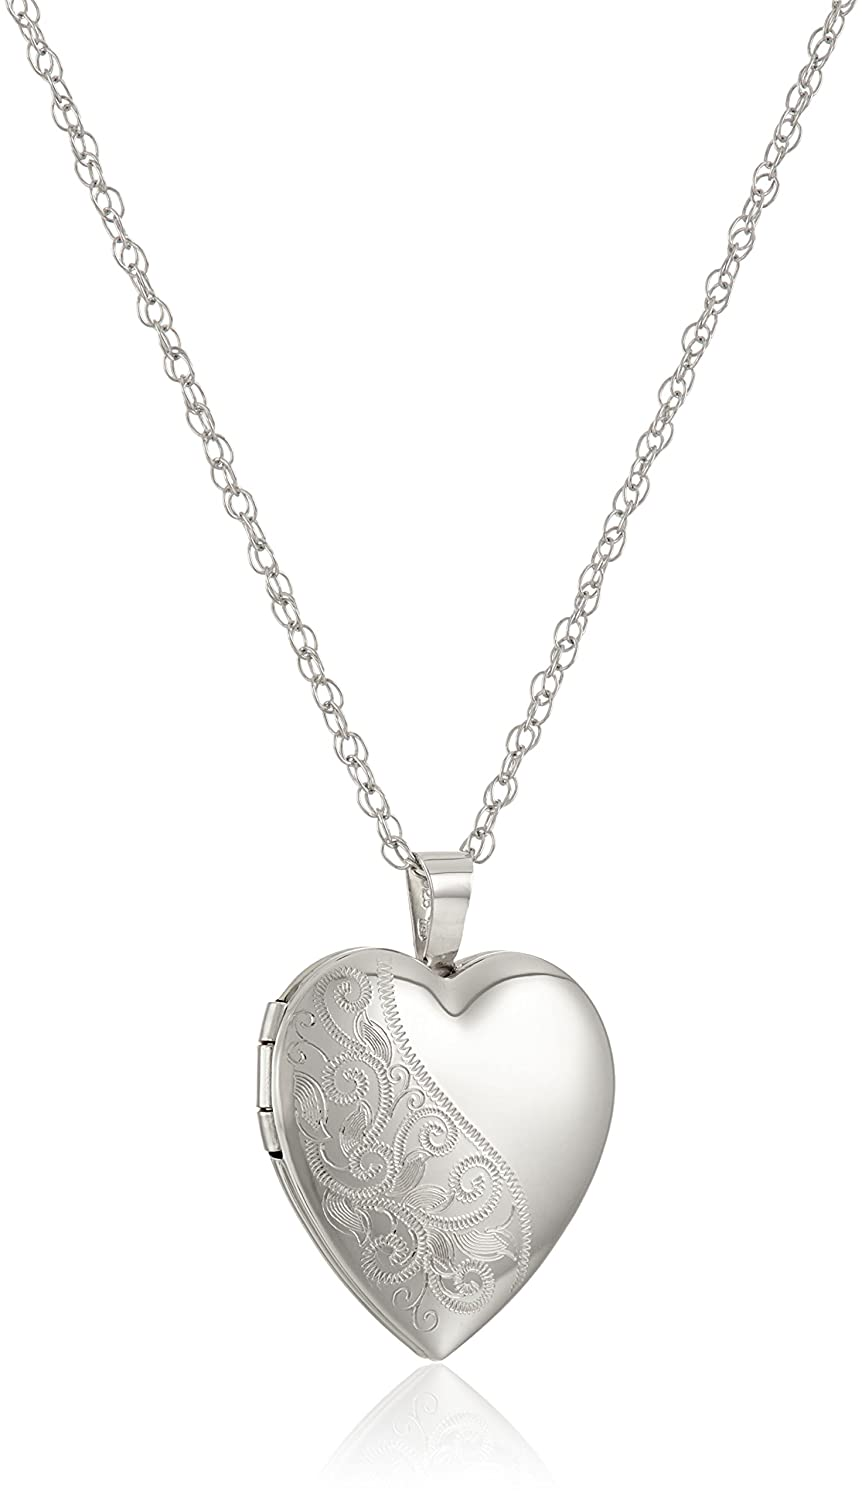 Sterling Silver Hand Engraved Floral Heart Pendant with Satin and Polished Finish Locket Necklace, 18 18 Amazon Collection AMZ7002F